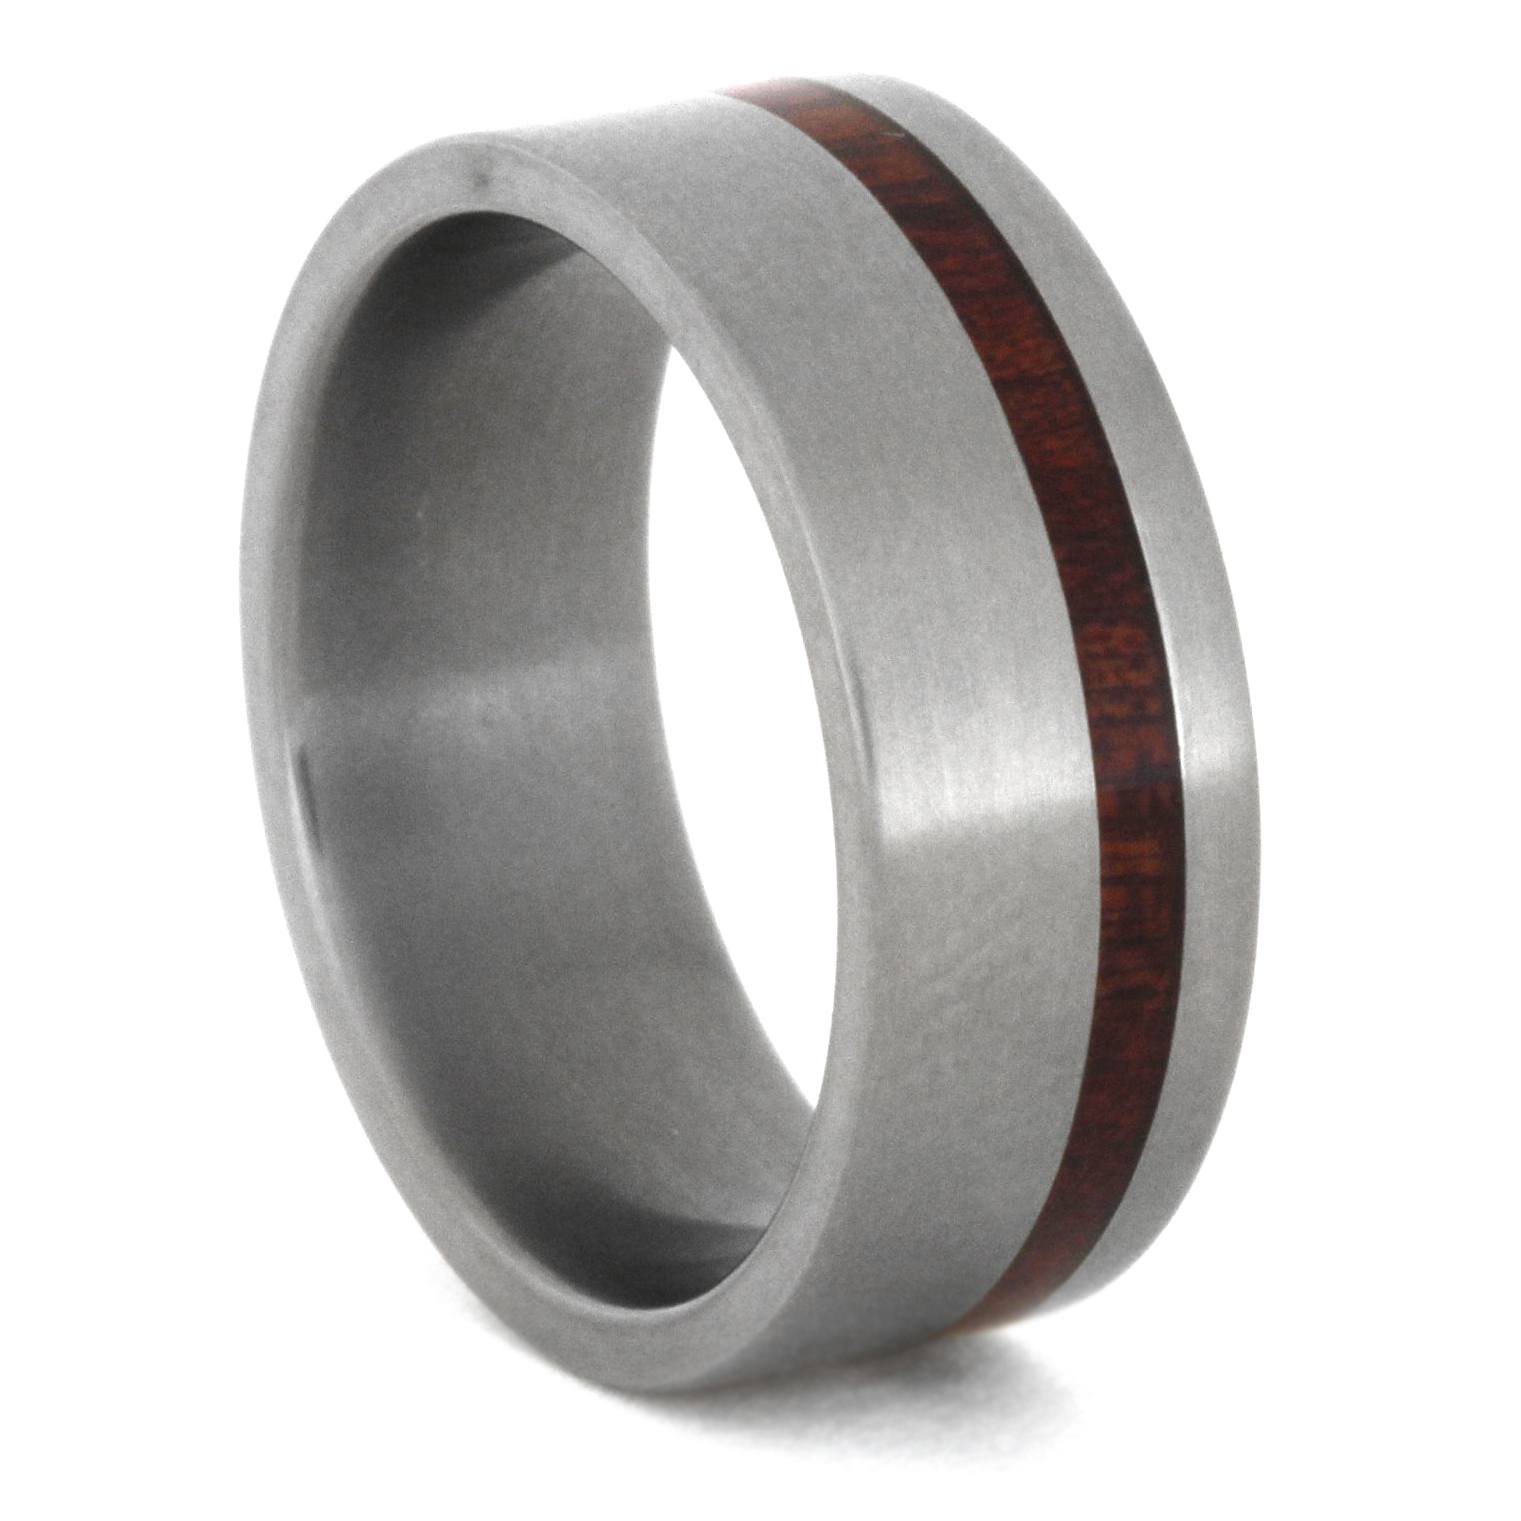 Matte Titanium Ring with Bloodwood Pinstripe, Size 5.75-RS8521 - Jewelry by Johan